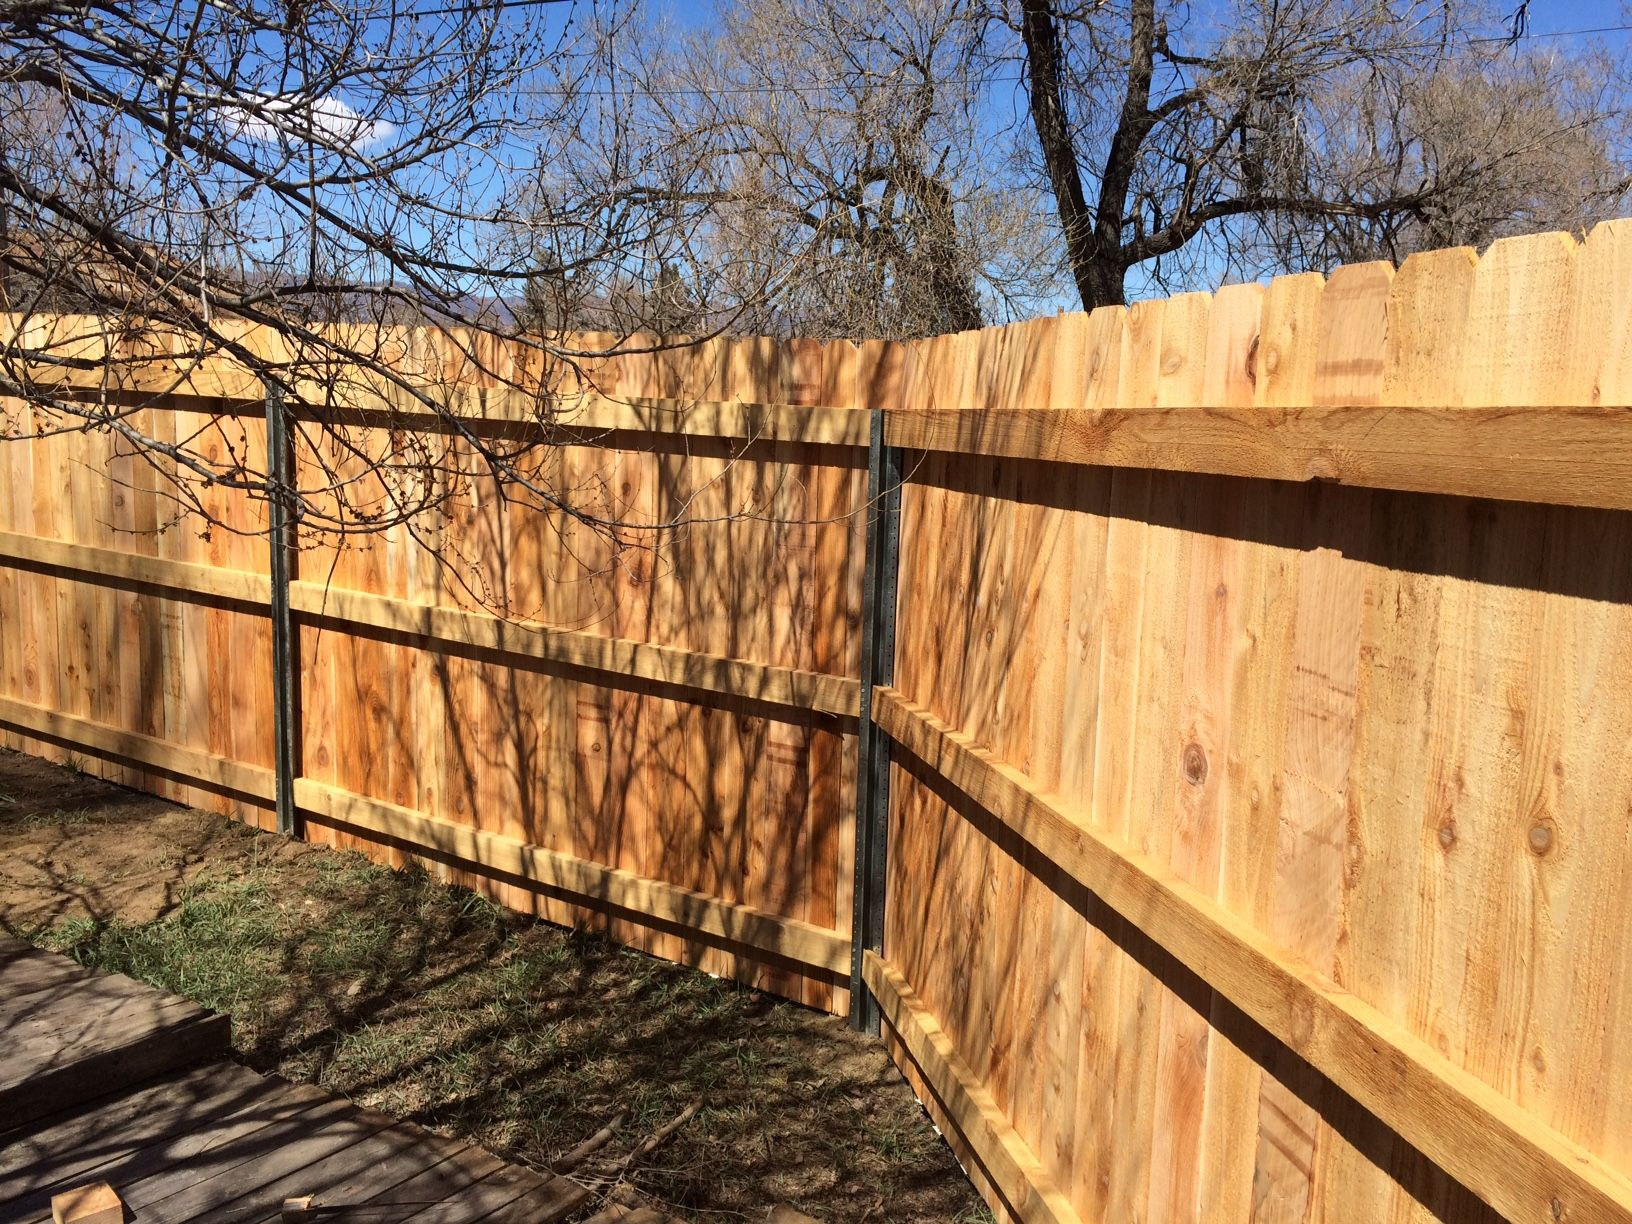 Metal post for wood fence - Cedar Privacy Fence Using Postmaster Steel Fence Posts Instead Of Wood